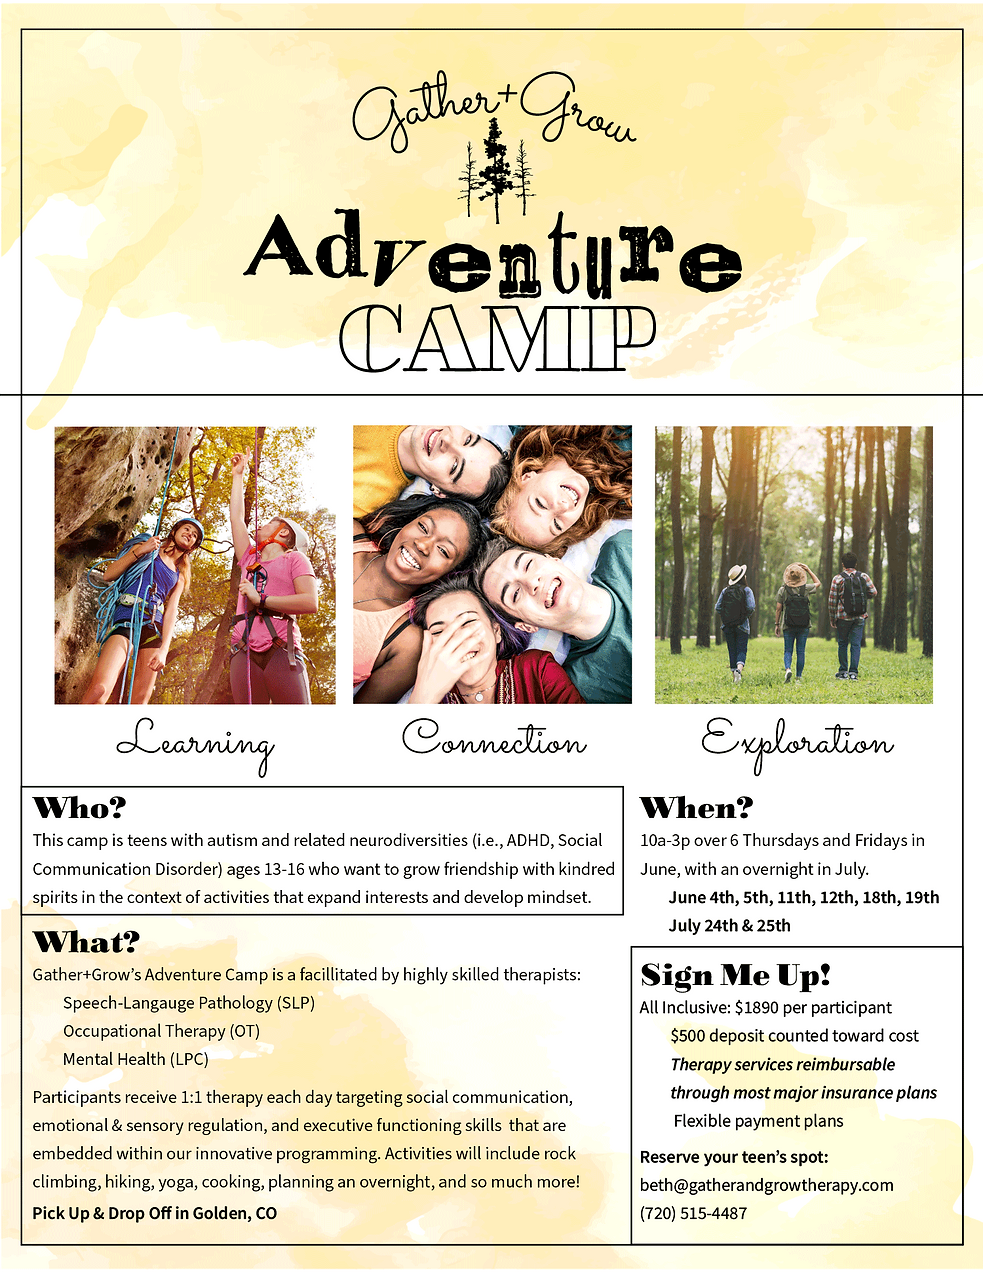 Adventure-Camp-Flyer.png